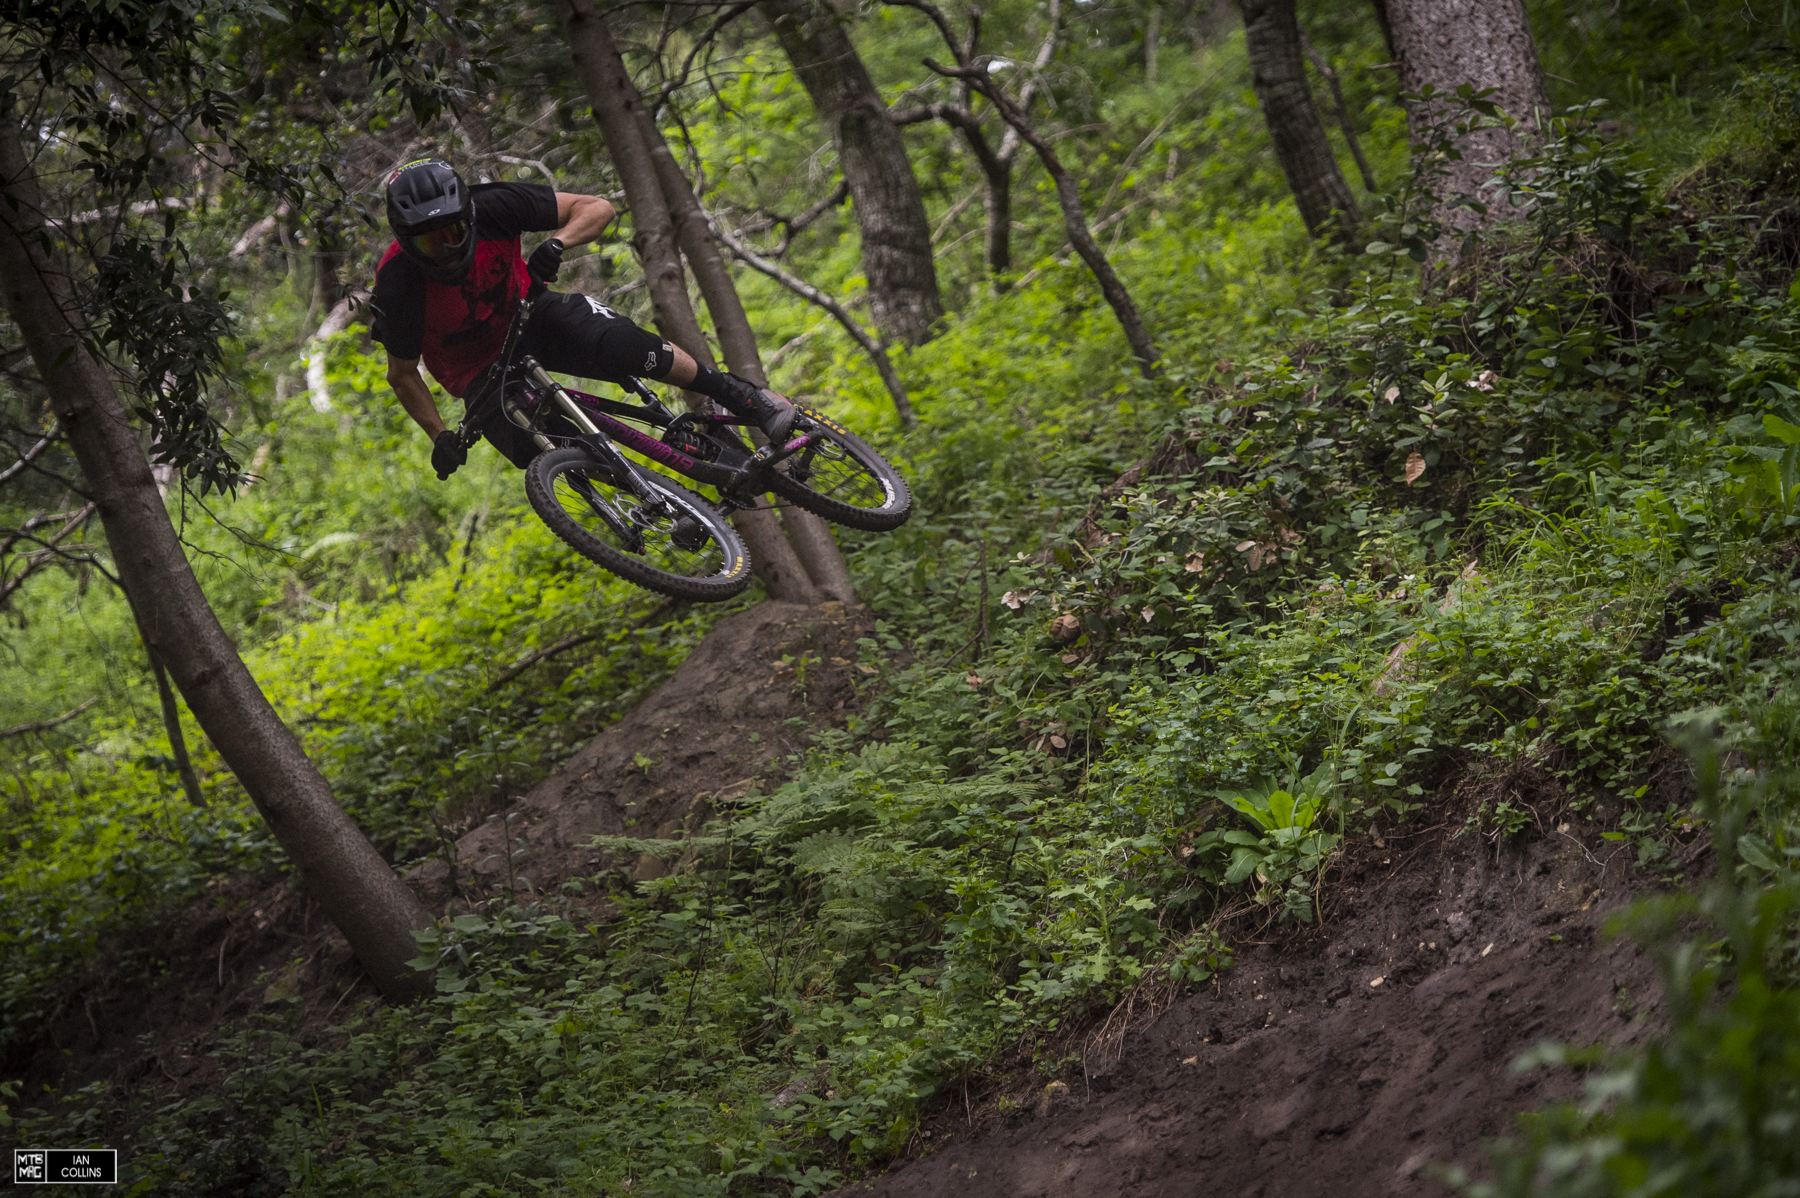 Brendan Howey got an invite this year...he was eager to get started.